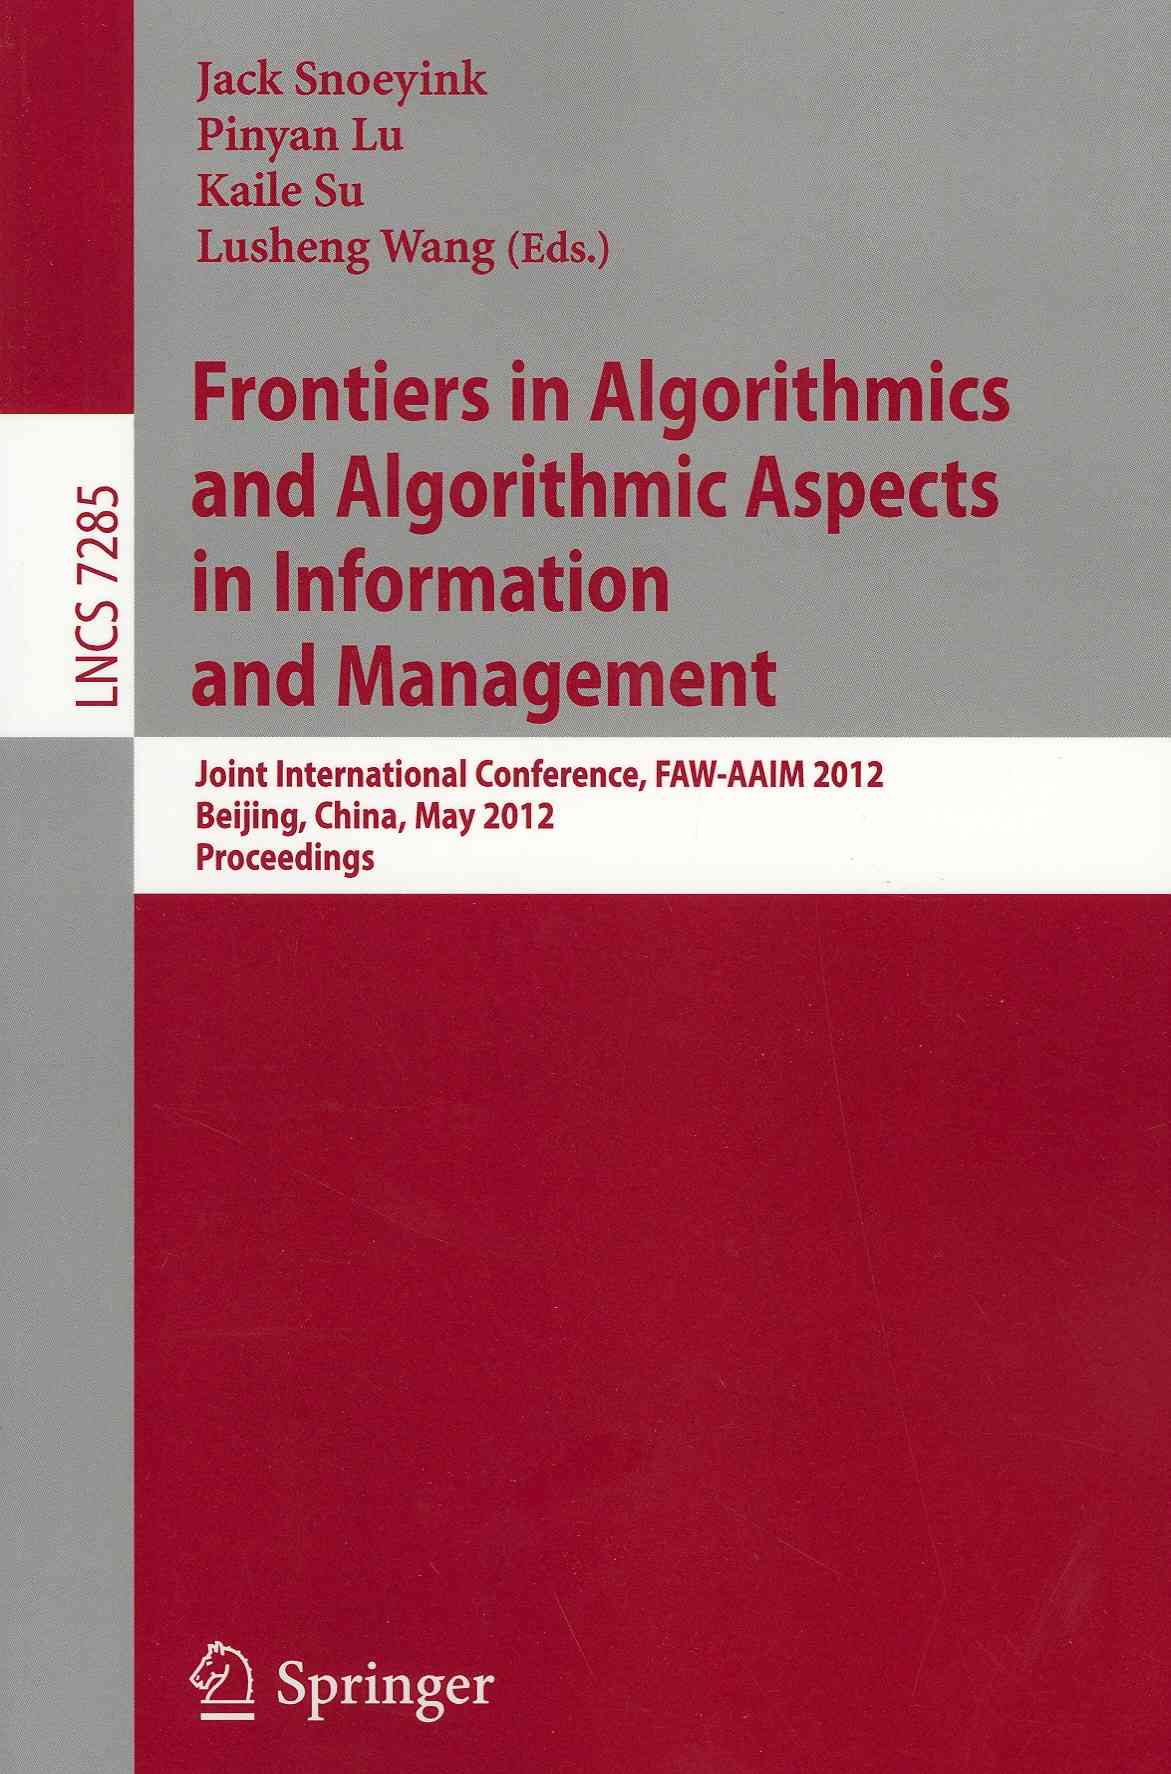 Frontiers in Algorithmics and Algorithmic Aspects in Information and Management By Snoeyink, Jack (EDT)/ Lu, Pinyan (EDT)/ Su, Kaile (EDT)/ Wang, Lusheng (EDT)